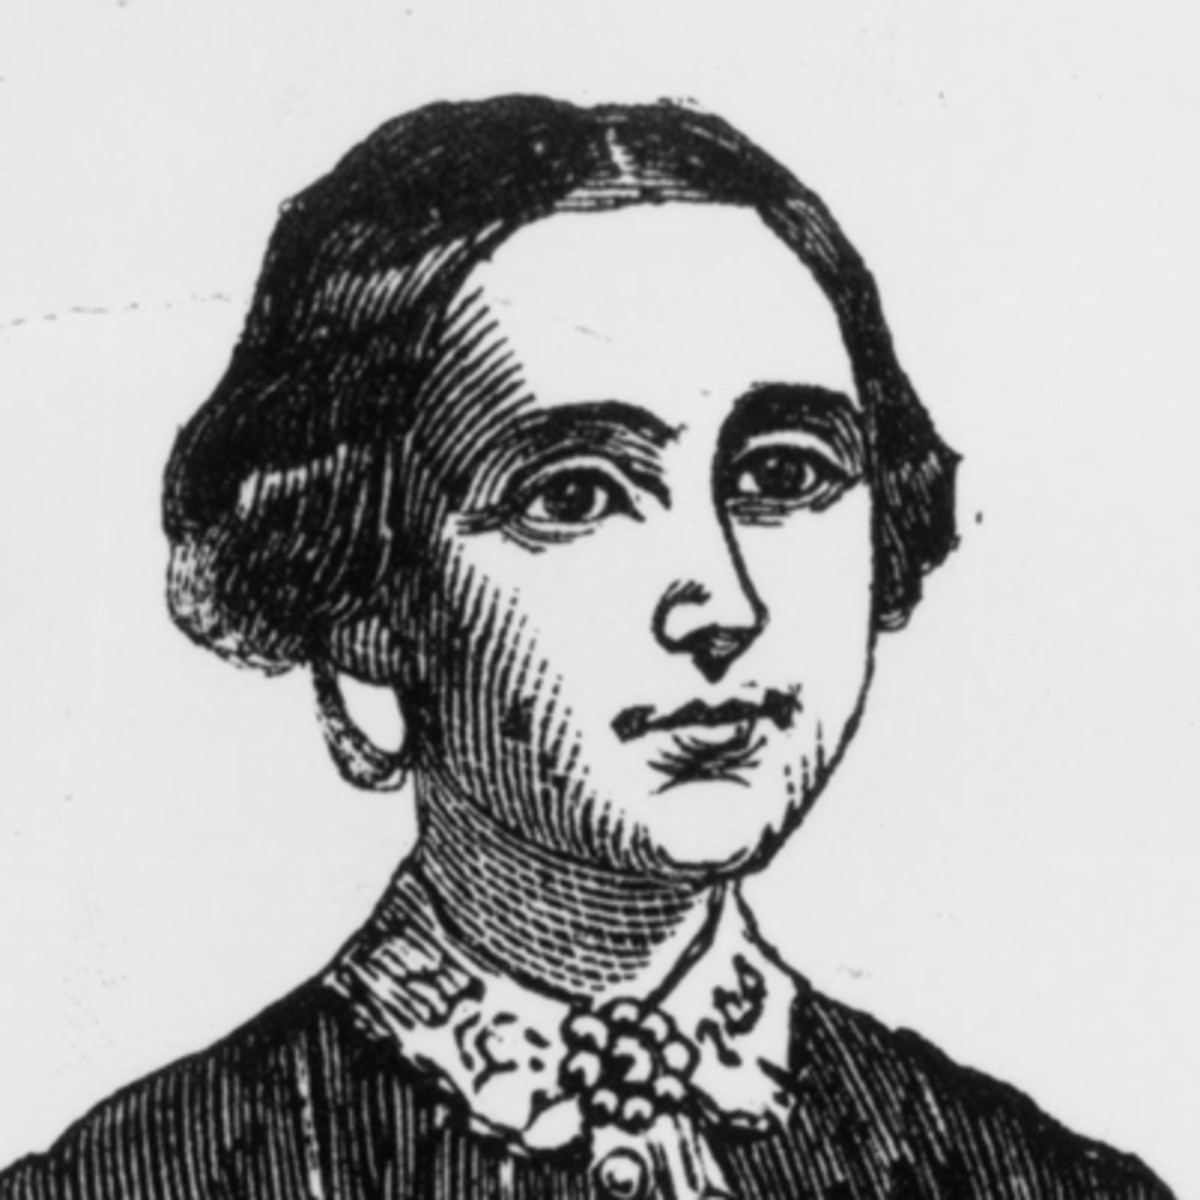 ameila bloomer Amelia bloomer (born amelia jenks) was a temperance reformer who became interested in women's rights, and started the publication the lilyin the lily, she advocated for dress reform, and wore one of the new costumes herself: a bodice, short skirt, and trousersher name became associated with the bloomer costume selected amelia jenks bloomer quotations.